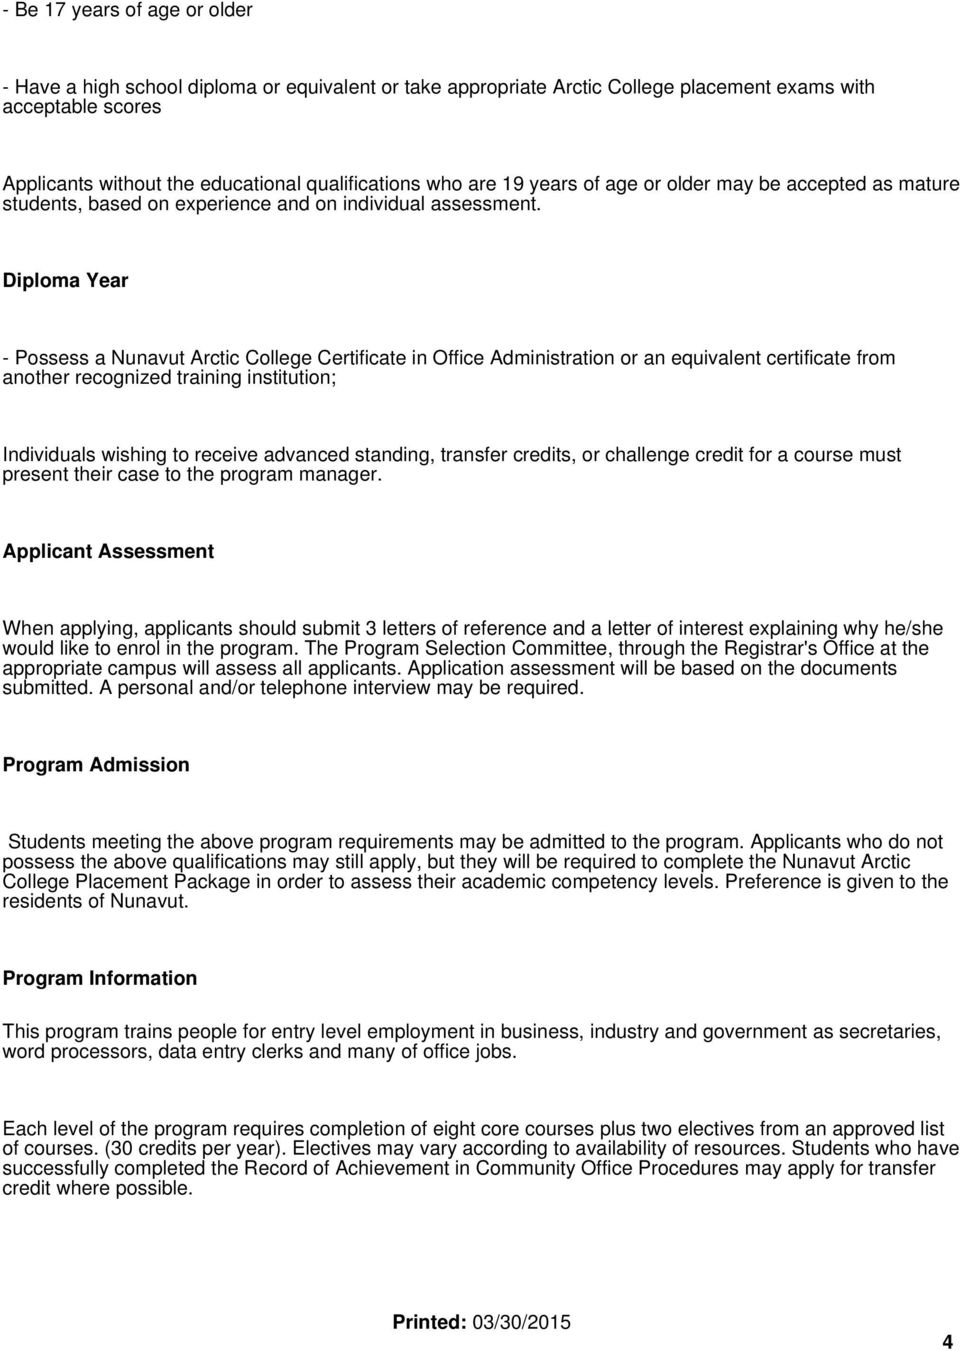 Diploma Year - Possess a Nunavut Arctic College Certificate in Office Administration or an equivalent certificate from another recognized training institution; Individuals wishing to receive advanced